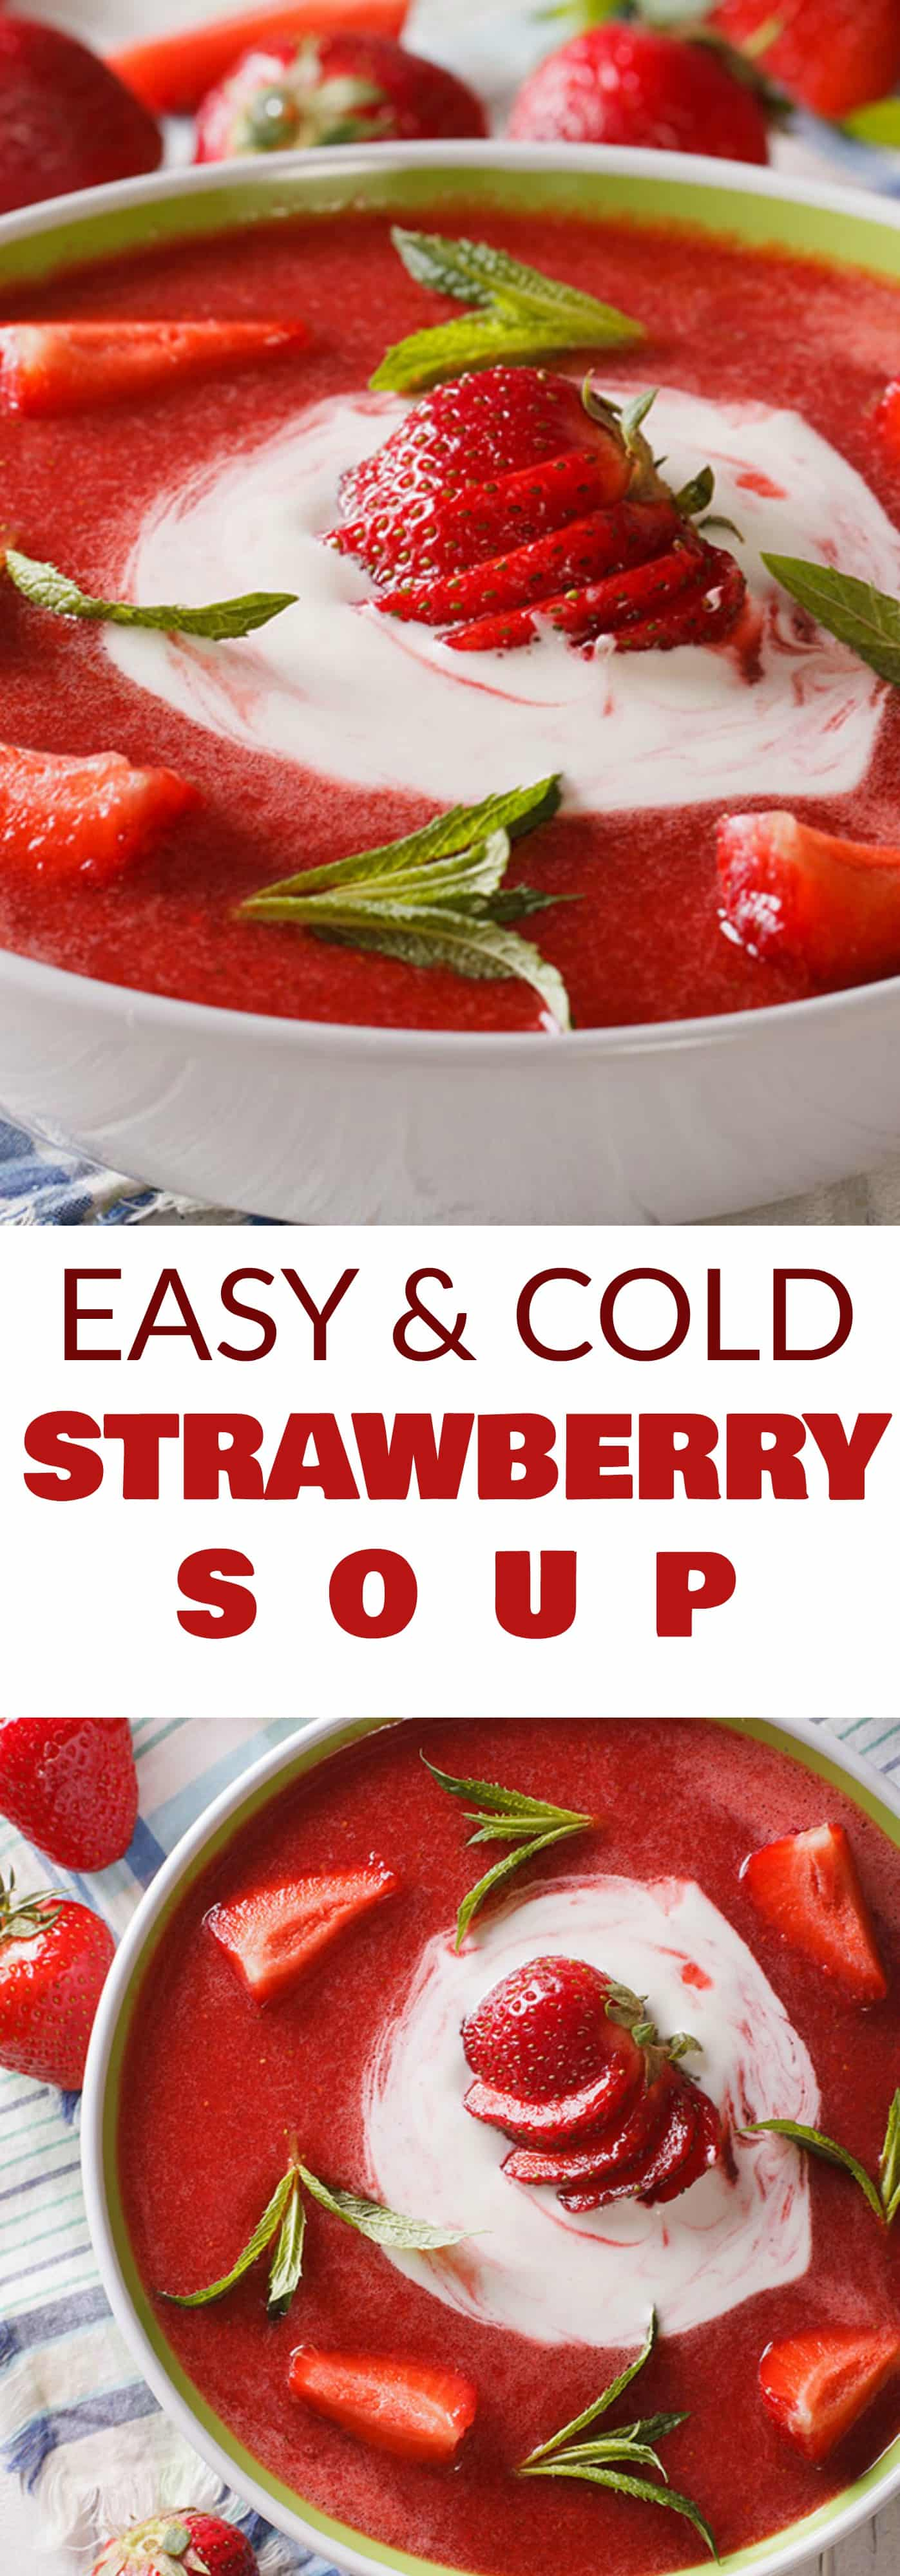 EASY COLD Strawberry Soup is the perfect fresh Summer time meal! This simple recipe uses fresh strawberries and yogurt to make a creamy chilled strawberry soup! Your entire family is going to love this healthy dish!